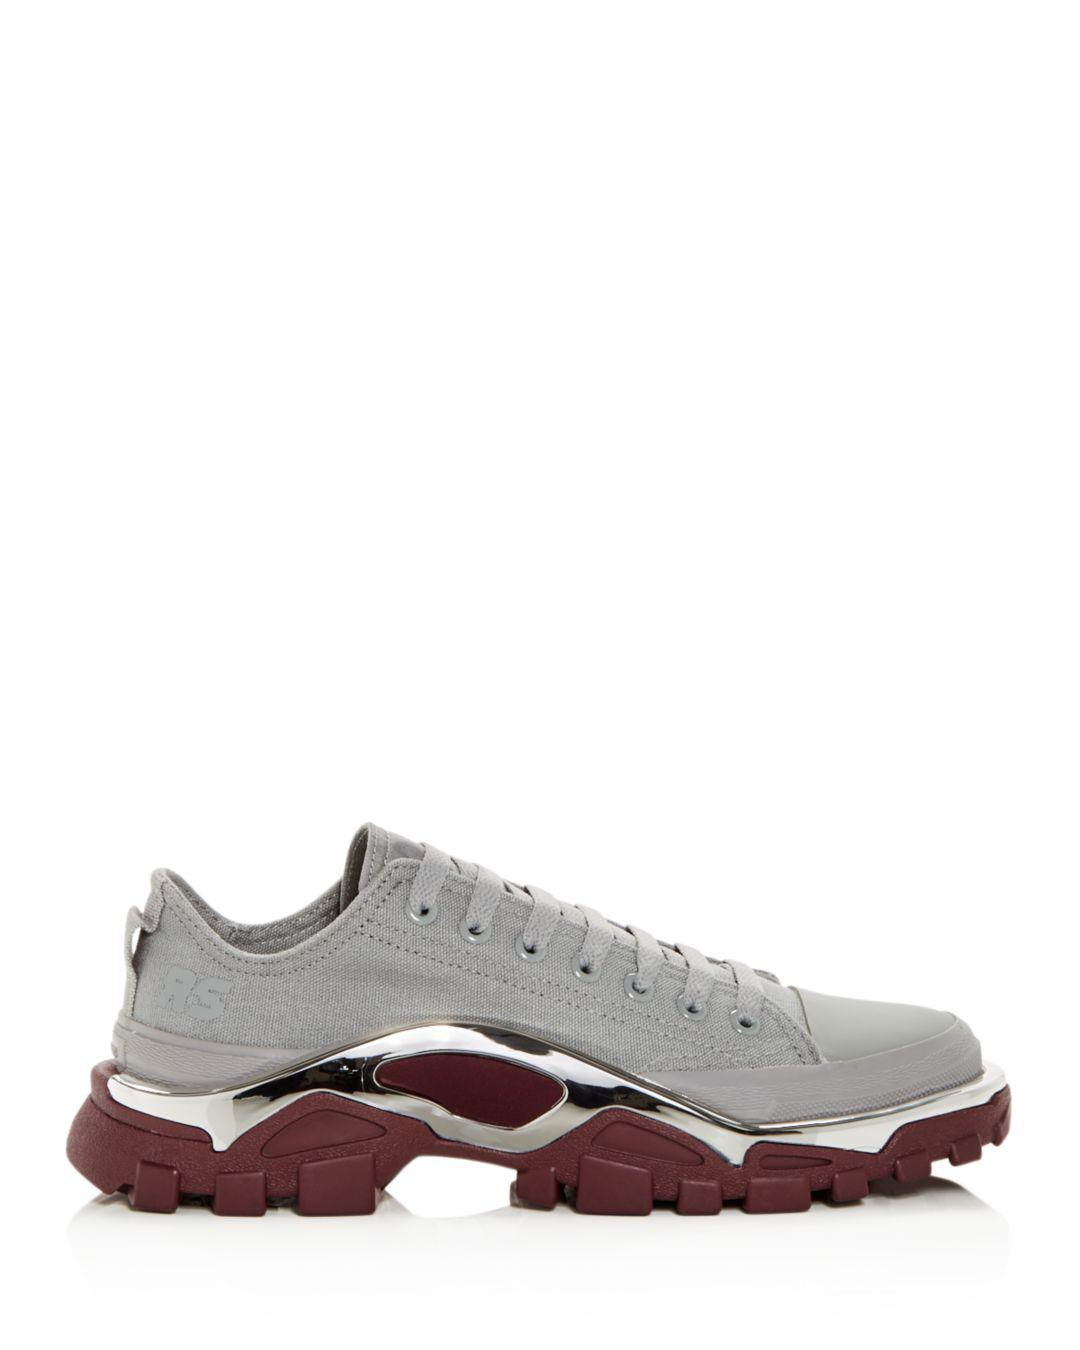 buy popular c576d 2b44d Adidas By Raf Simons Womens Rs Detroit Runner Lace Up Sneakers in Gray -  Lyst